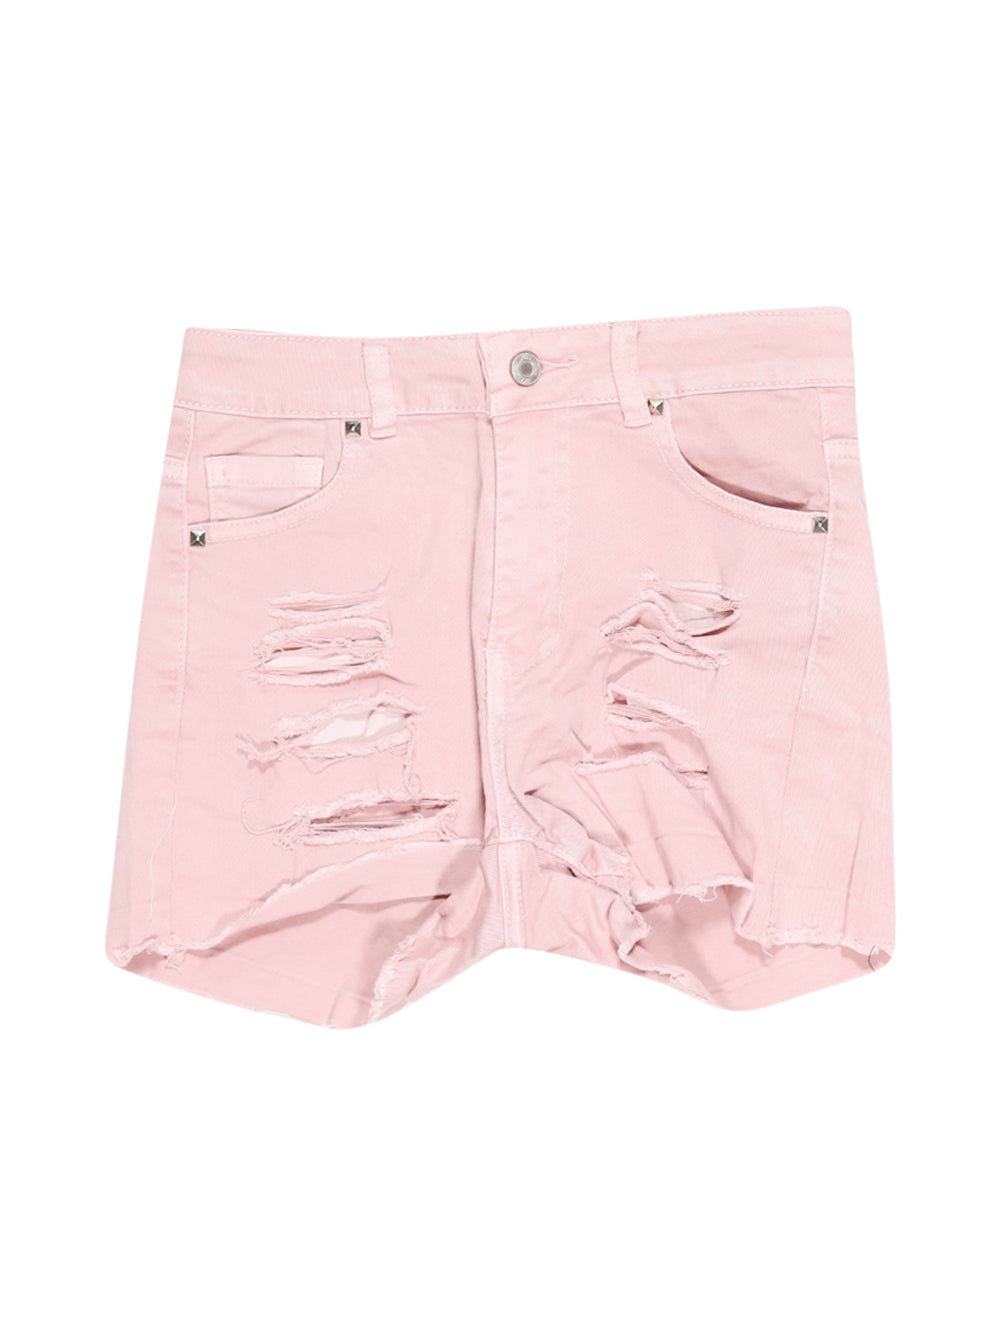 Front photo of Preloved see see Pink Woman's shorts - size 8/S